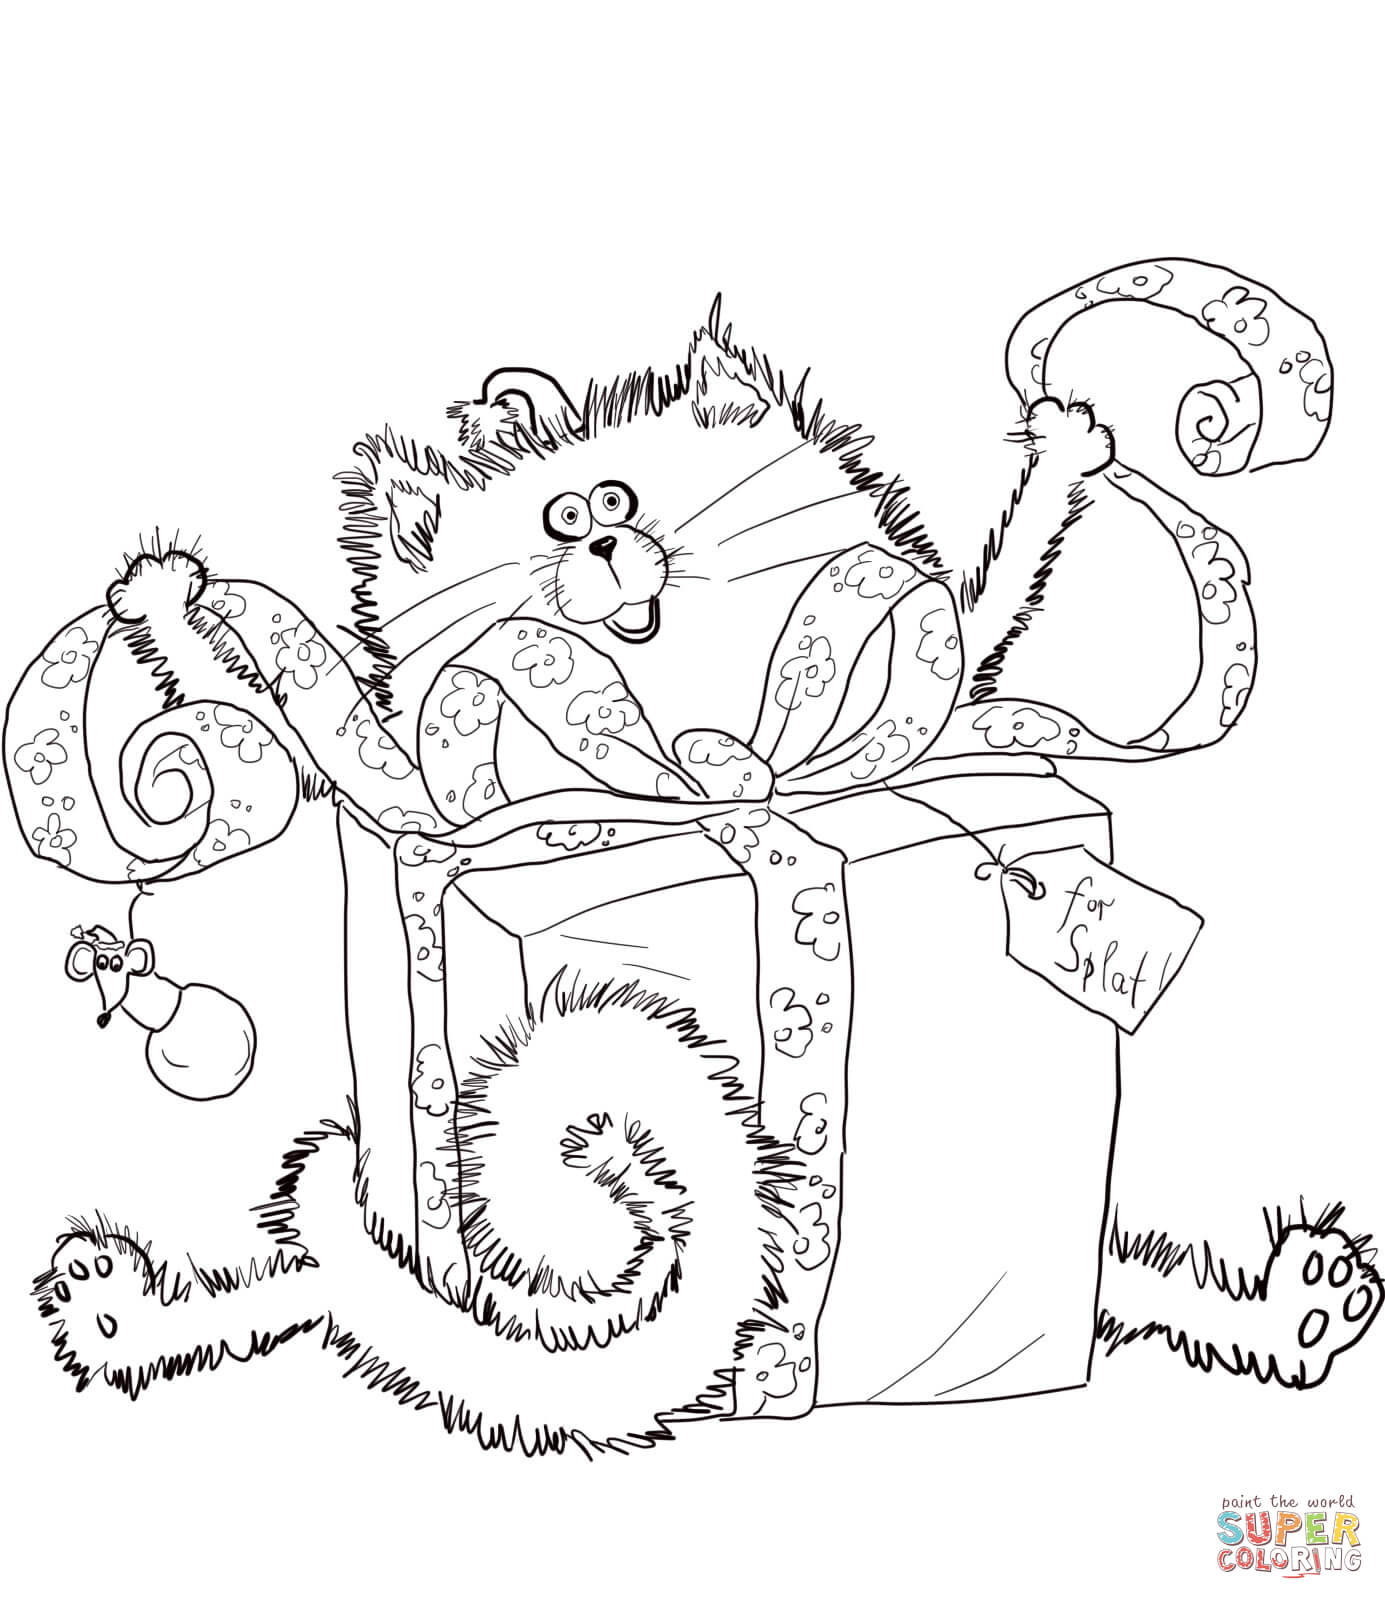 Splat The Cat Coloring Pages Az Coloring Pages Splat The Cat Coloring Page